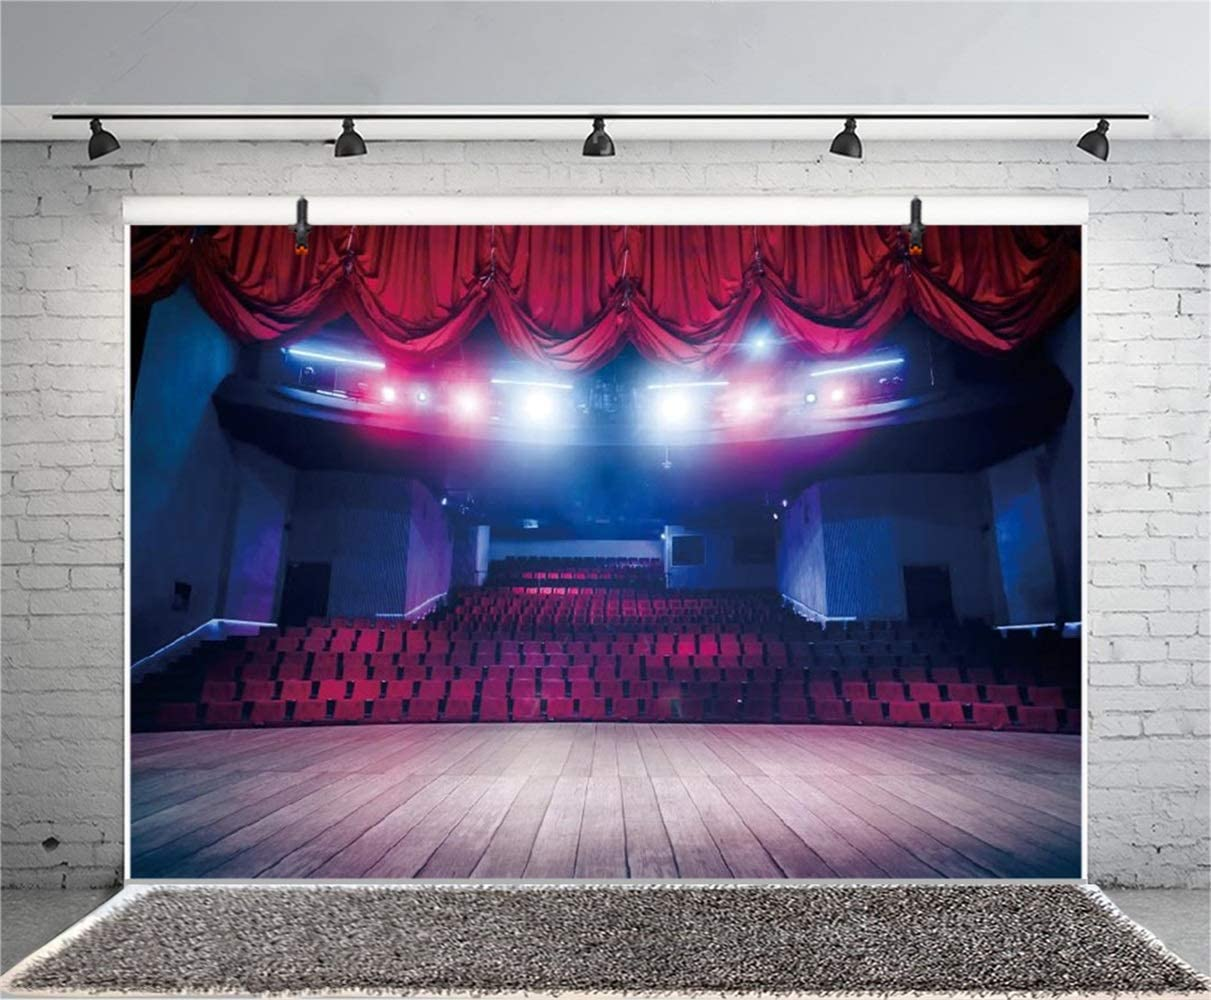 Vintage Theatre Interior Backdrop 7x5ft Polyester Bright Spotlights Red Valance Stage Wooden Floor Facing The Auditorium Photography Background Show Performance Shoot Banner Adult Child Portrait